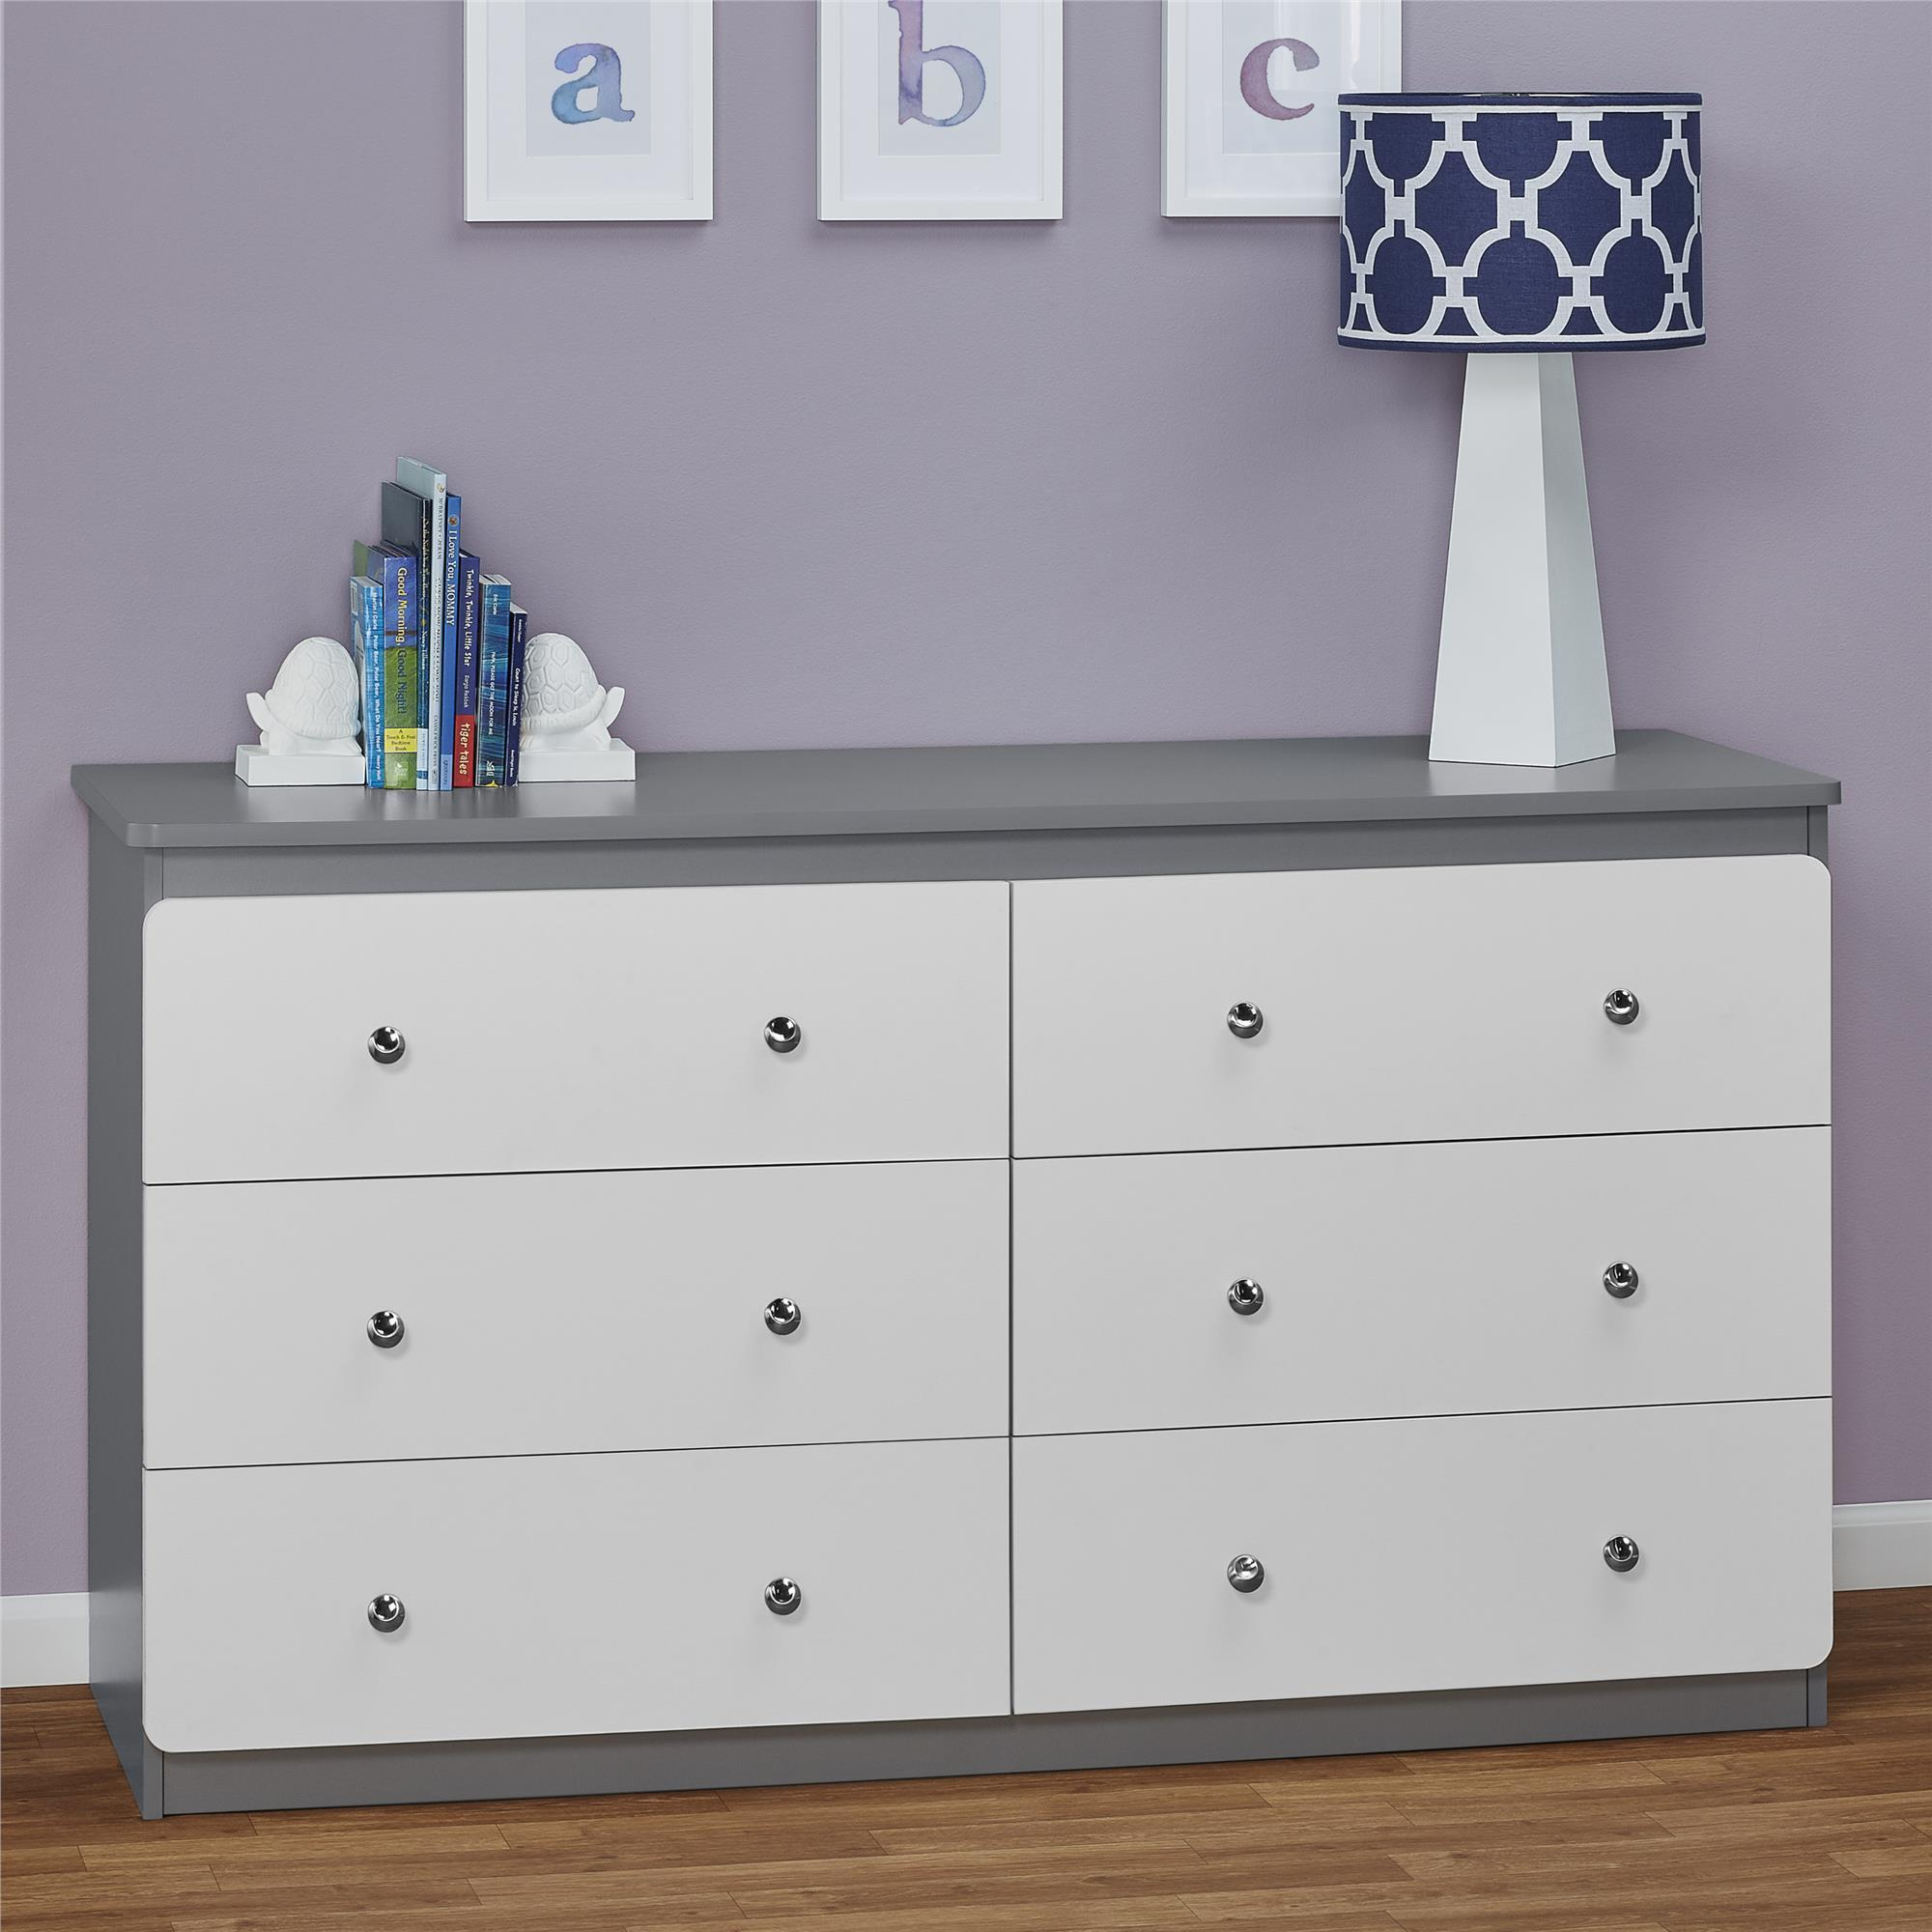 and facebook the on goods dressers dresser to furniture best buy of online share sub buzz decor kids places for home bekoconnell